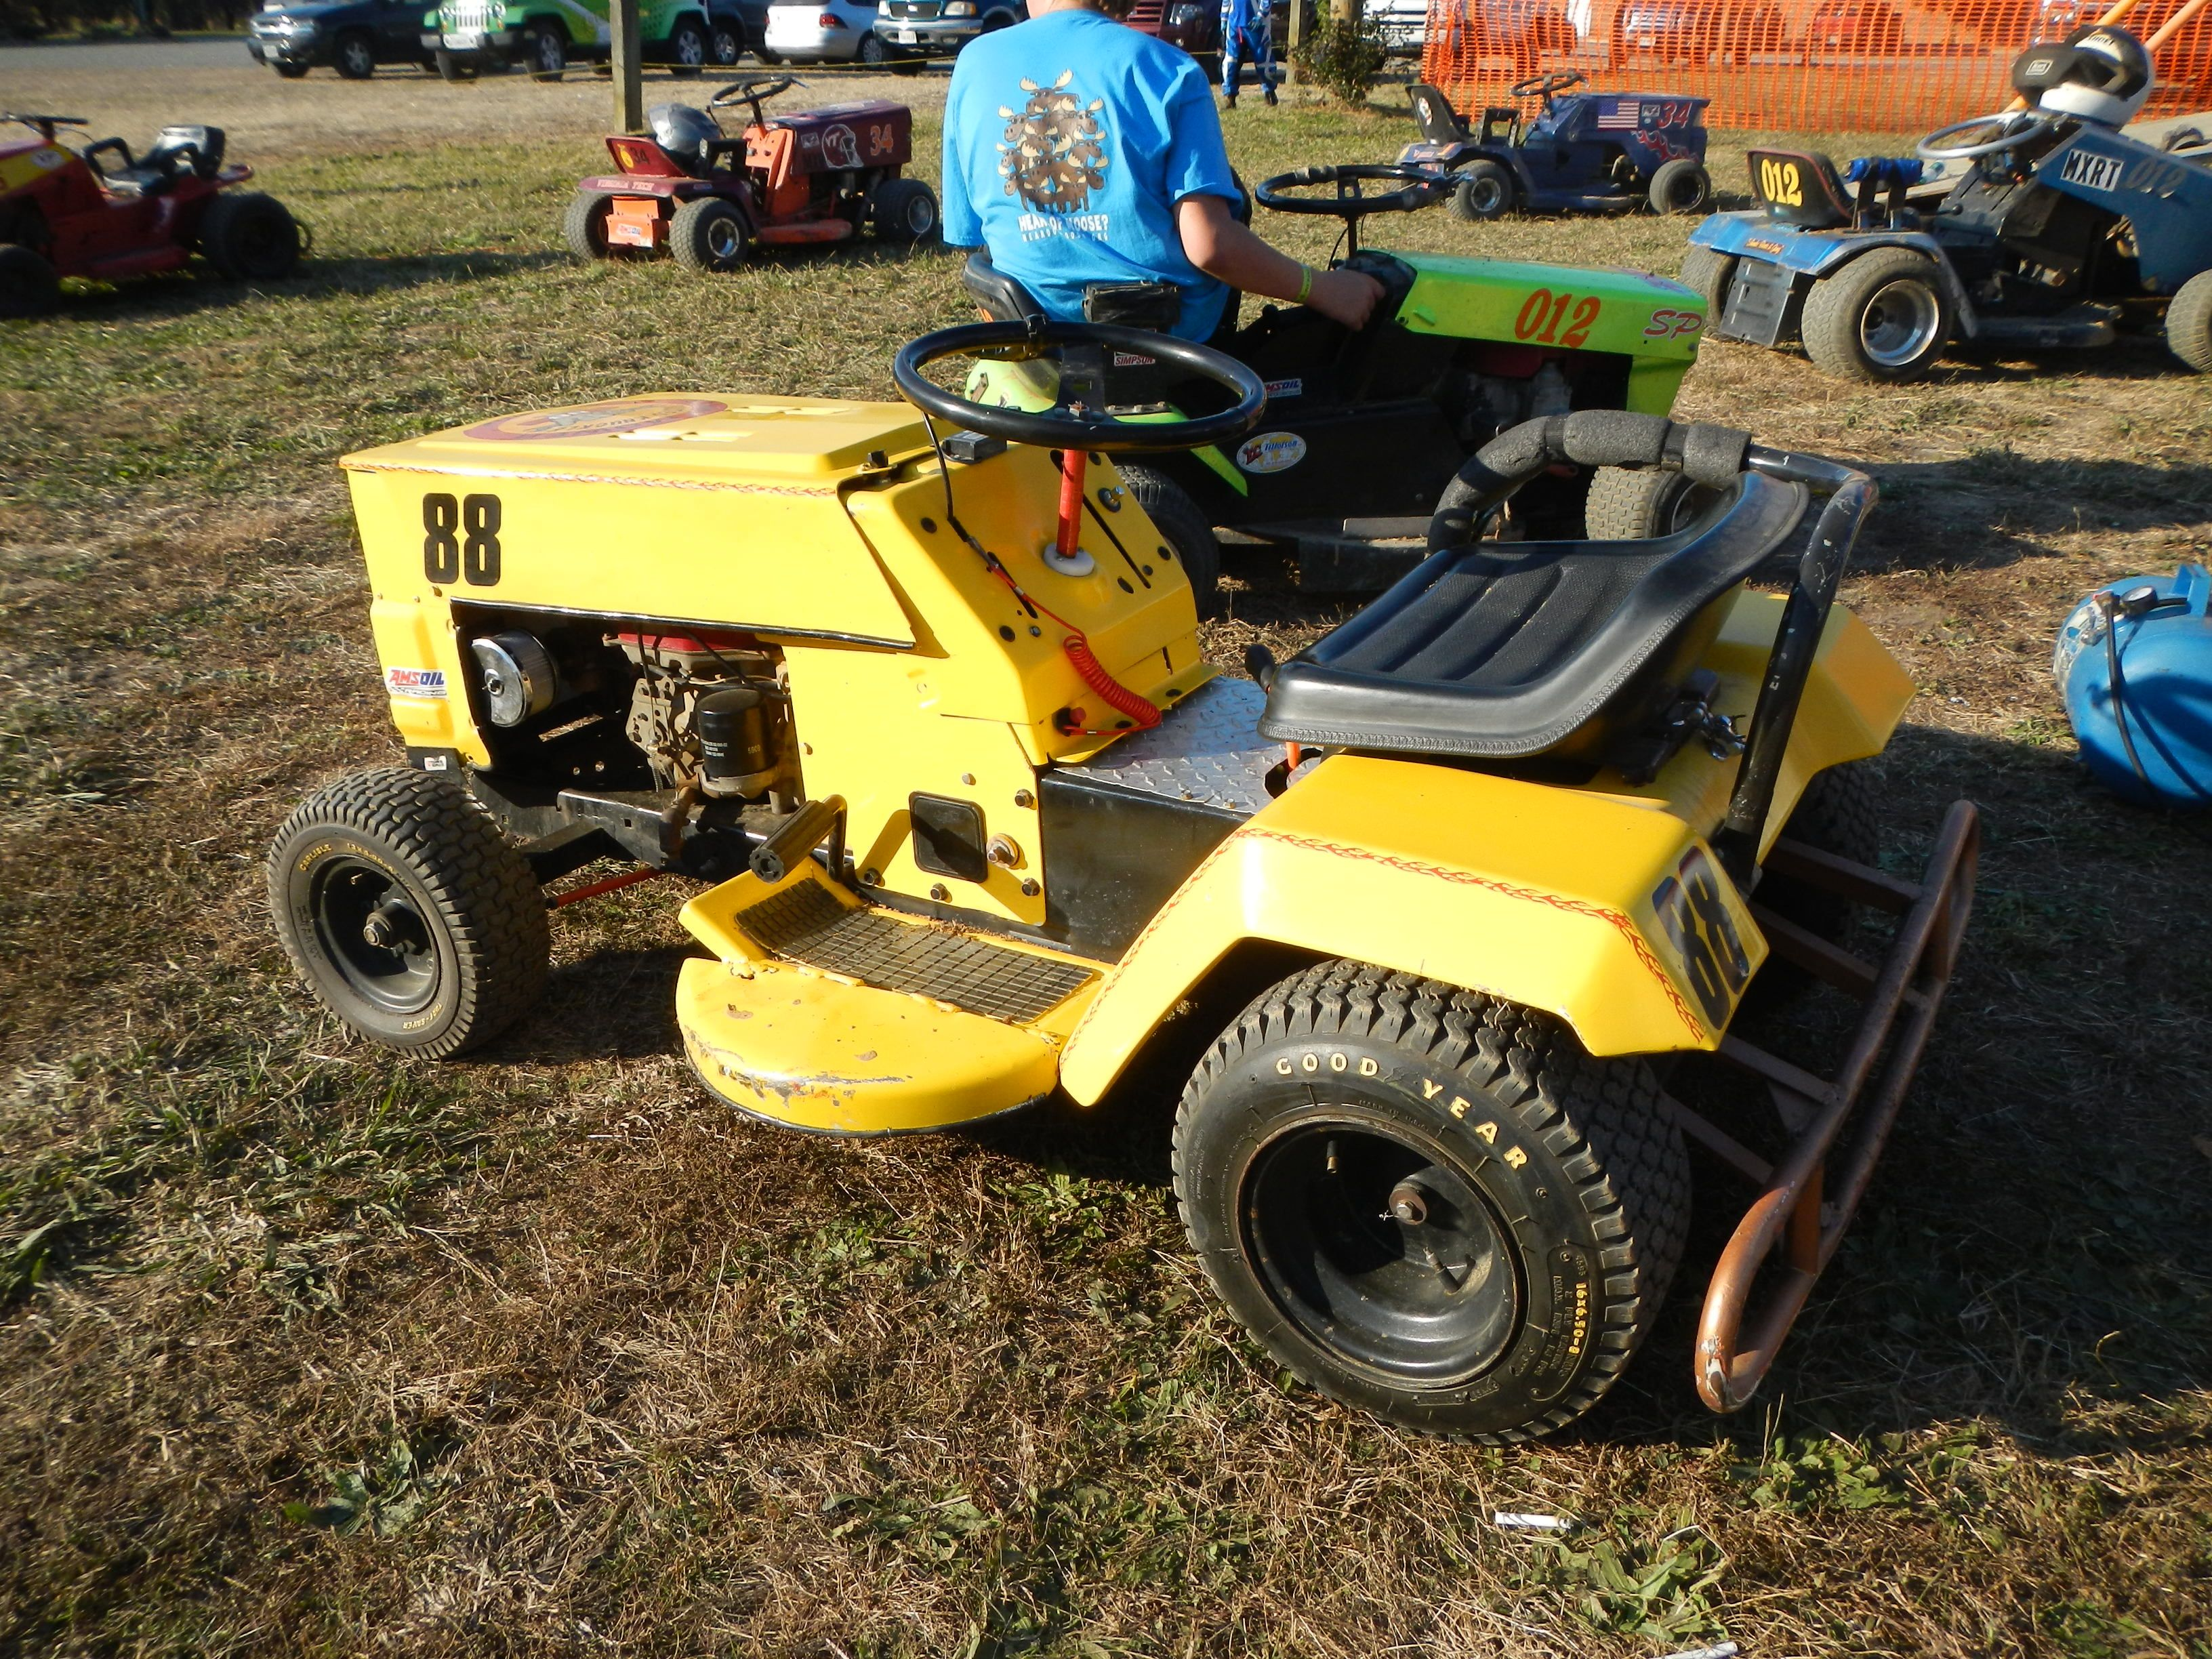 Suped Up Lawn Mower For Racing With The Virginia Lawn